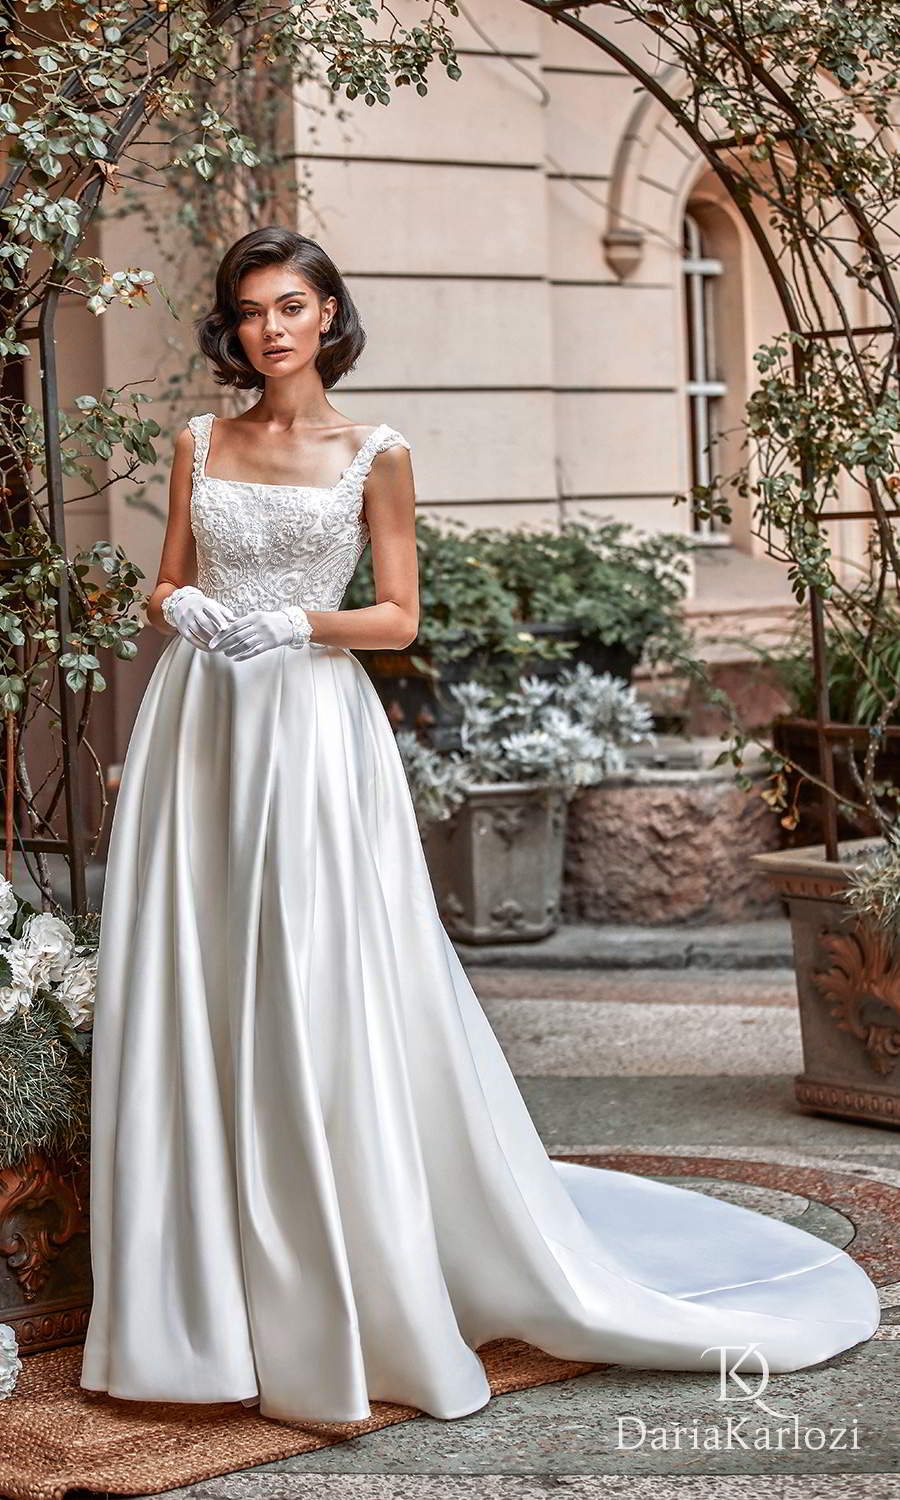 daria karlozi 2021 graceful dream bridal sleeveless thick straps square neckline heavily embellished bodice clean skirt a line ball gown wedding dress chapel train (first love) mv